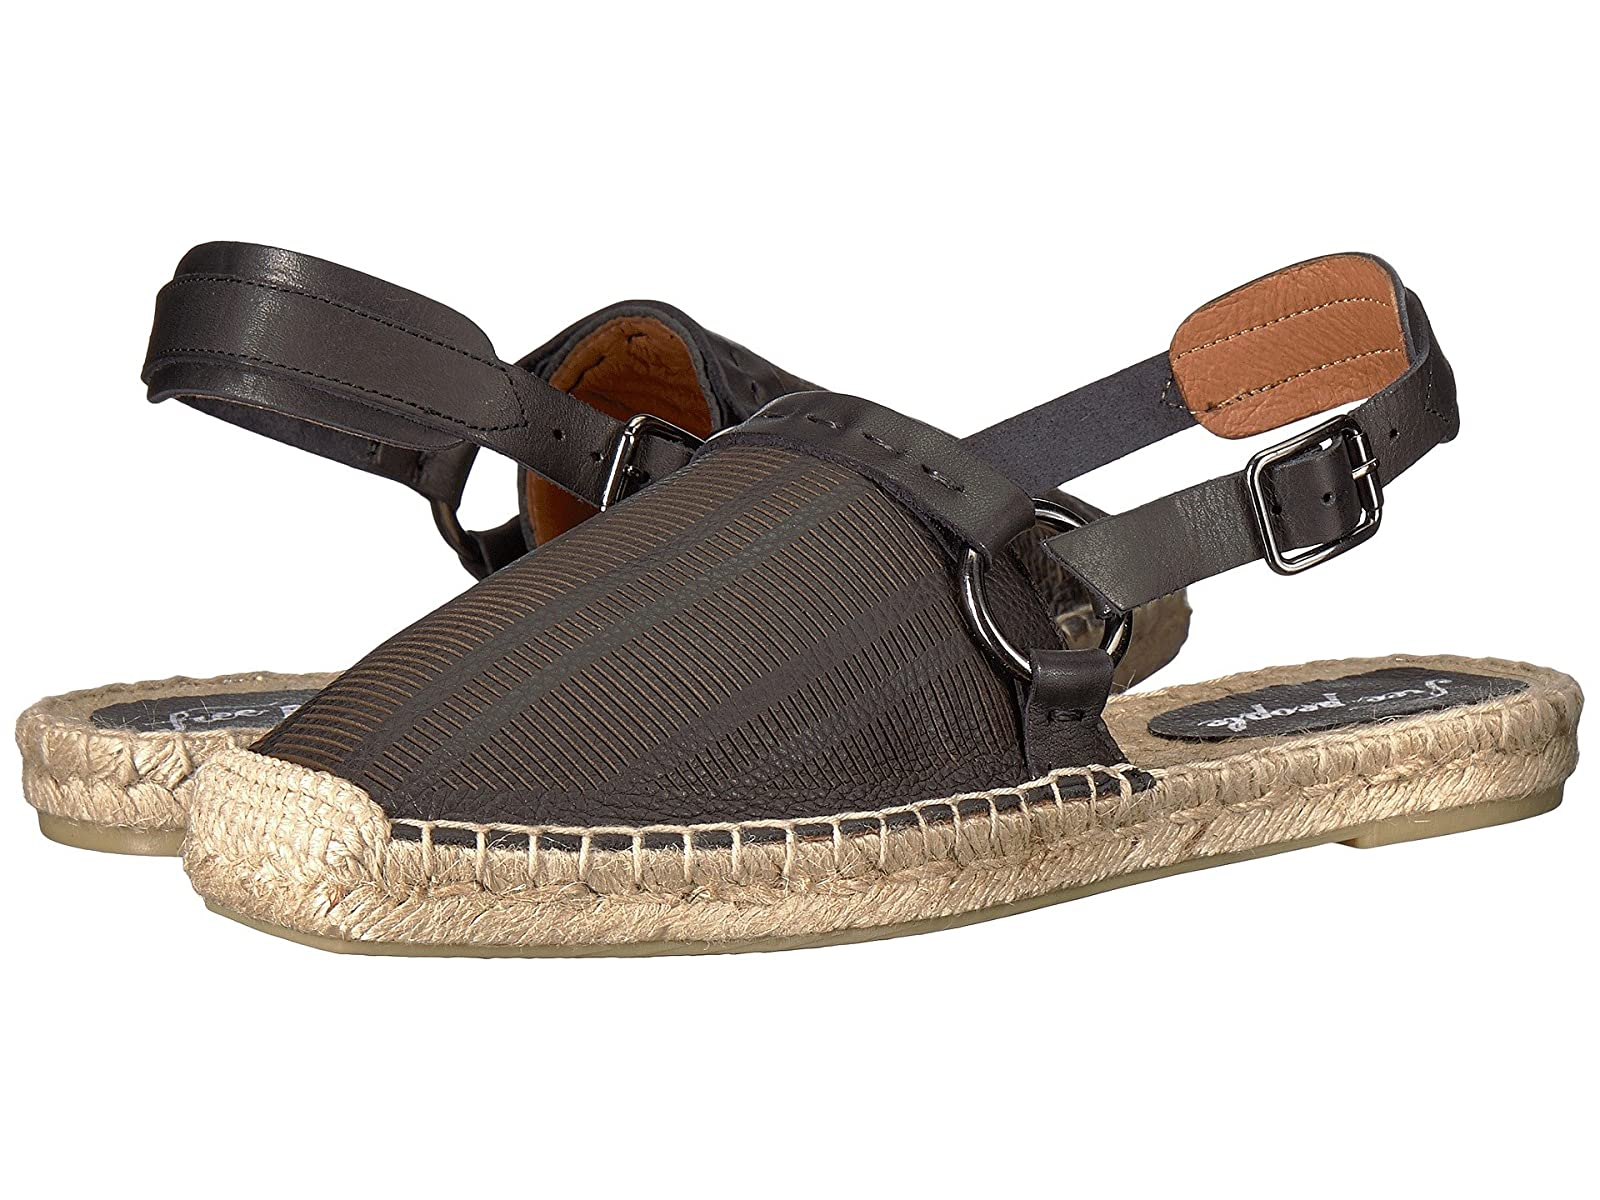 Free People Cabo EspadrilleCheap and distinctive eye-catching shoes